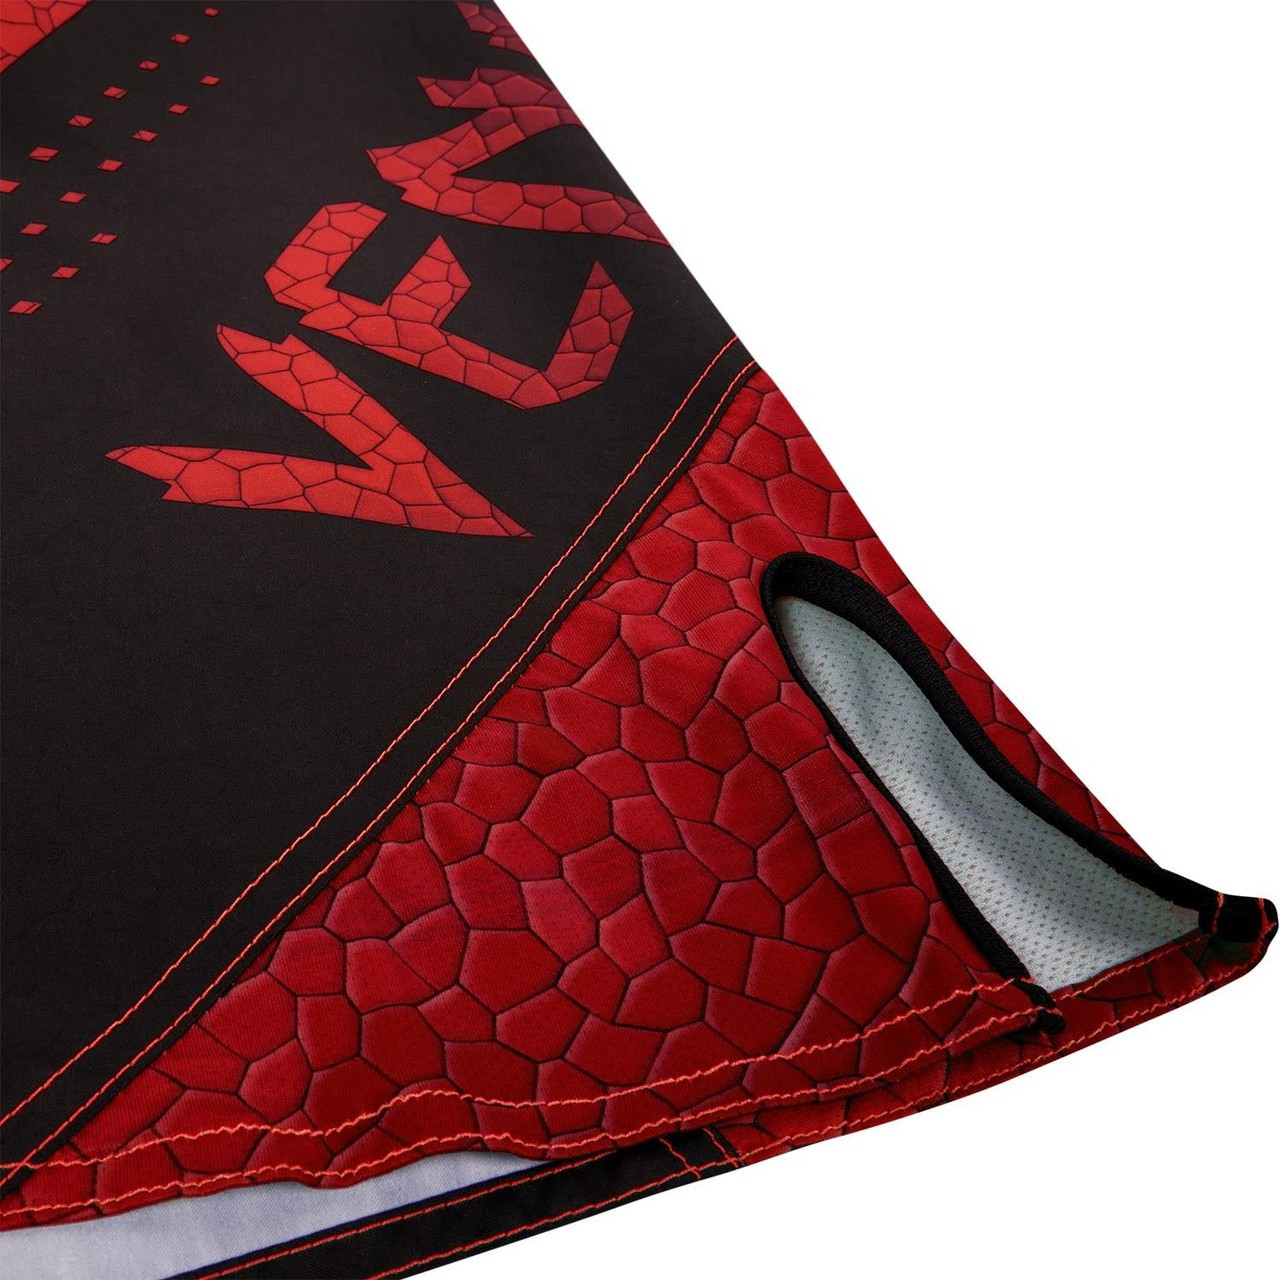 side slit zoom Venum Hurricane Fightshorts Amazonia Red MMA Shorts now available at www.thejiujitsushop.com  Top MMA and Grappling Shorts  Enjoy Free Shipping from The Jiu Jitsu Shop today!